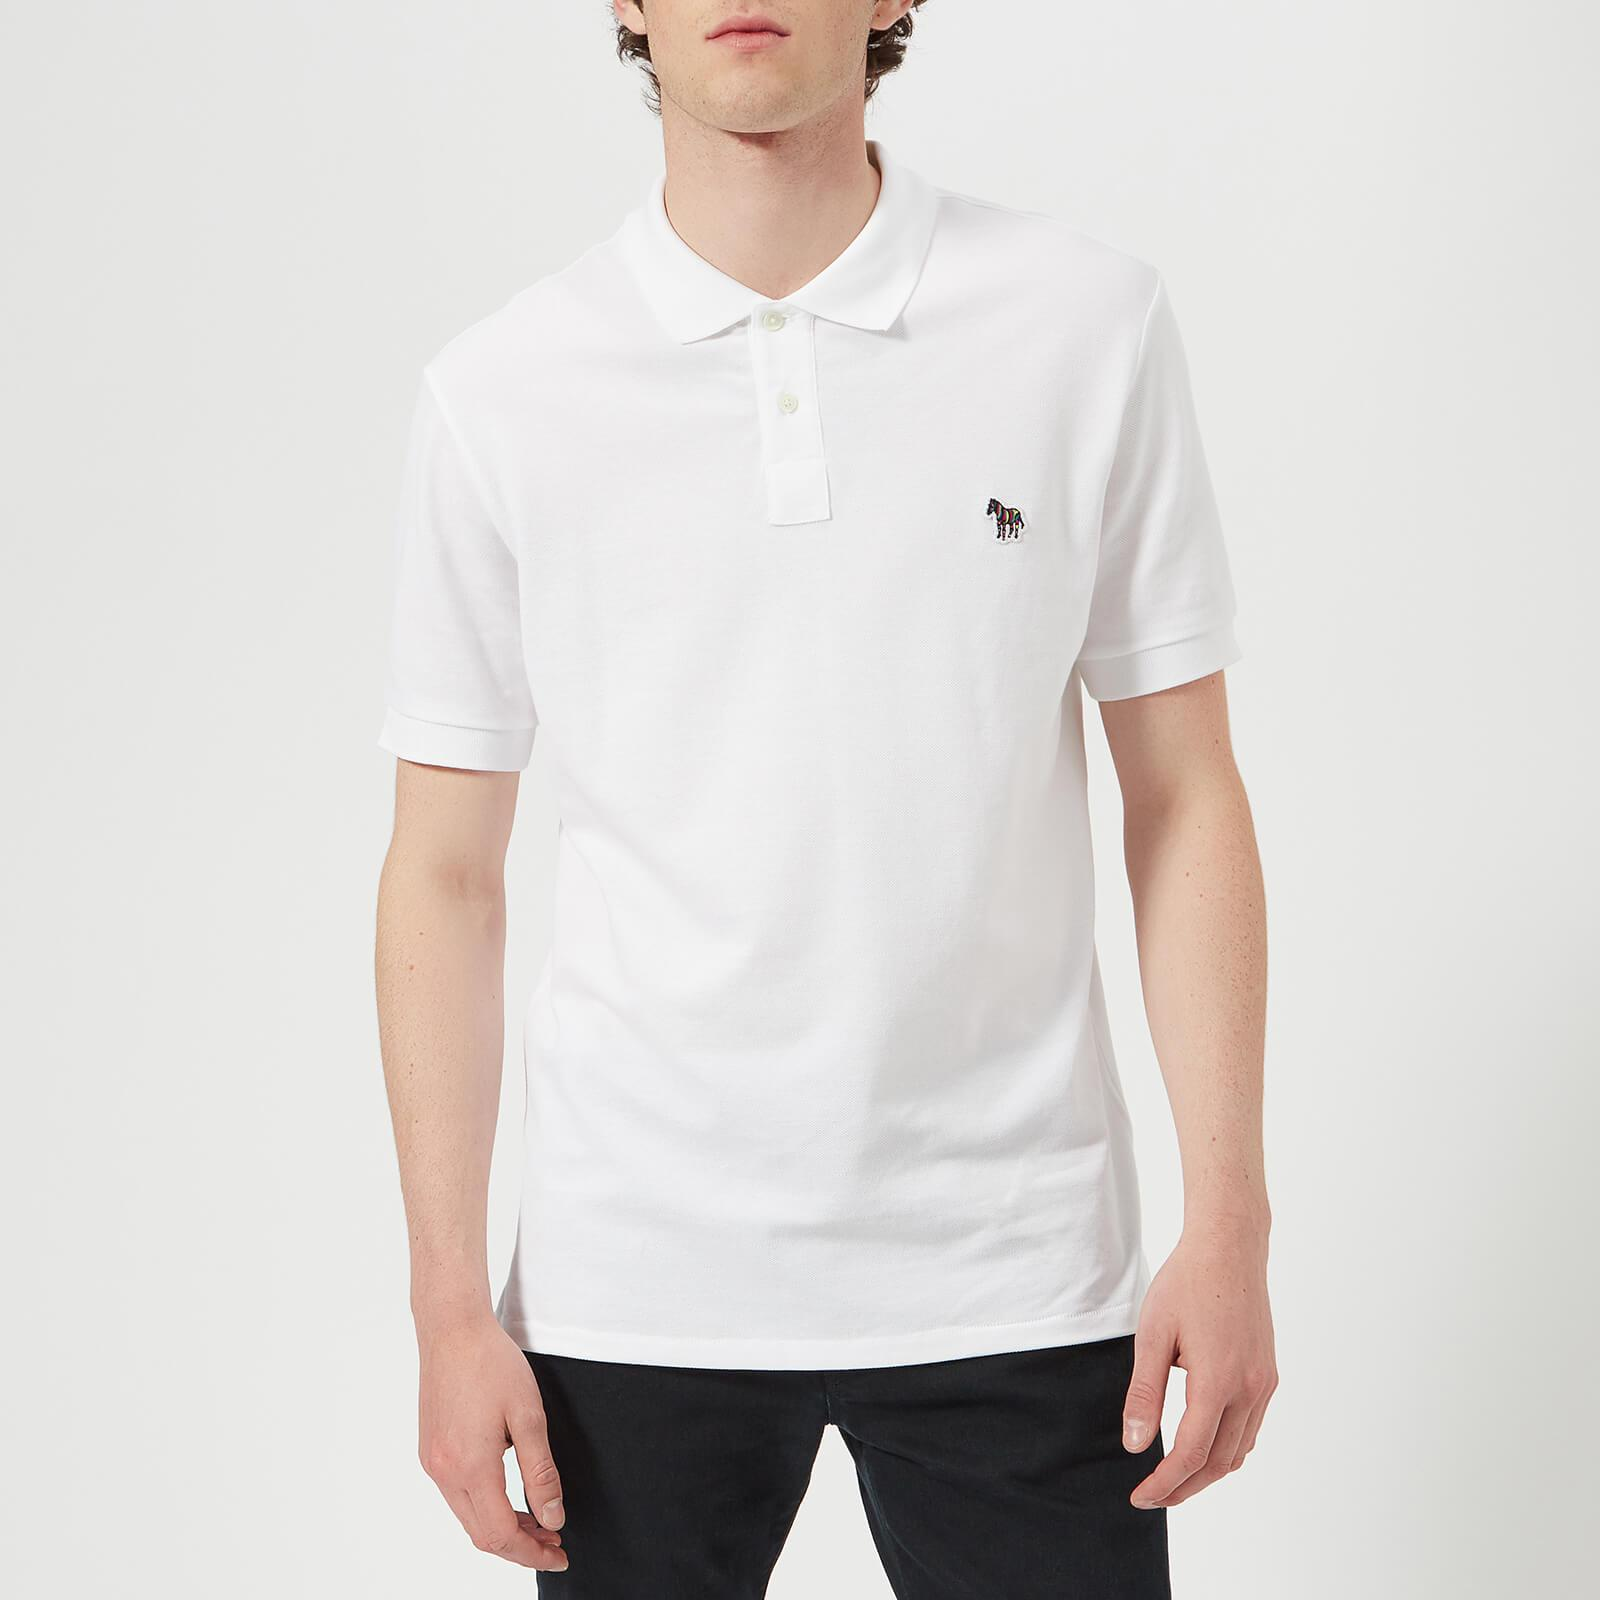 31b9768893ab29 Lyst - PS by Paul Smith Regular Fit Zebra Polo Shirt in White for Men